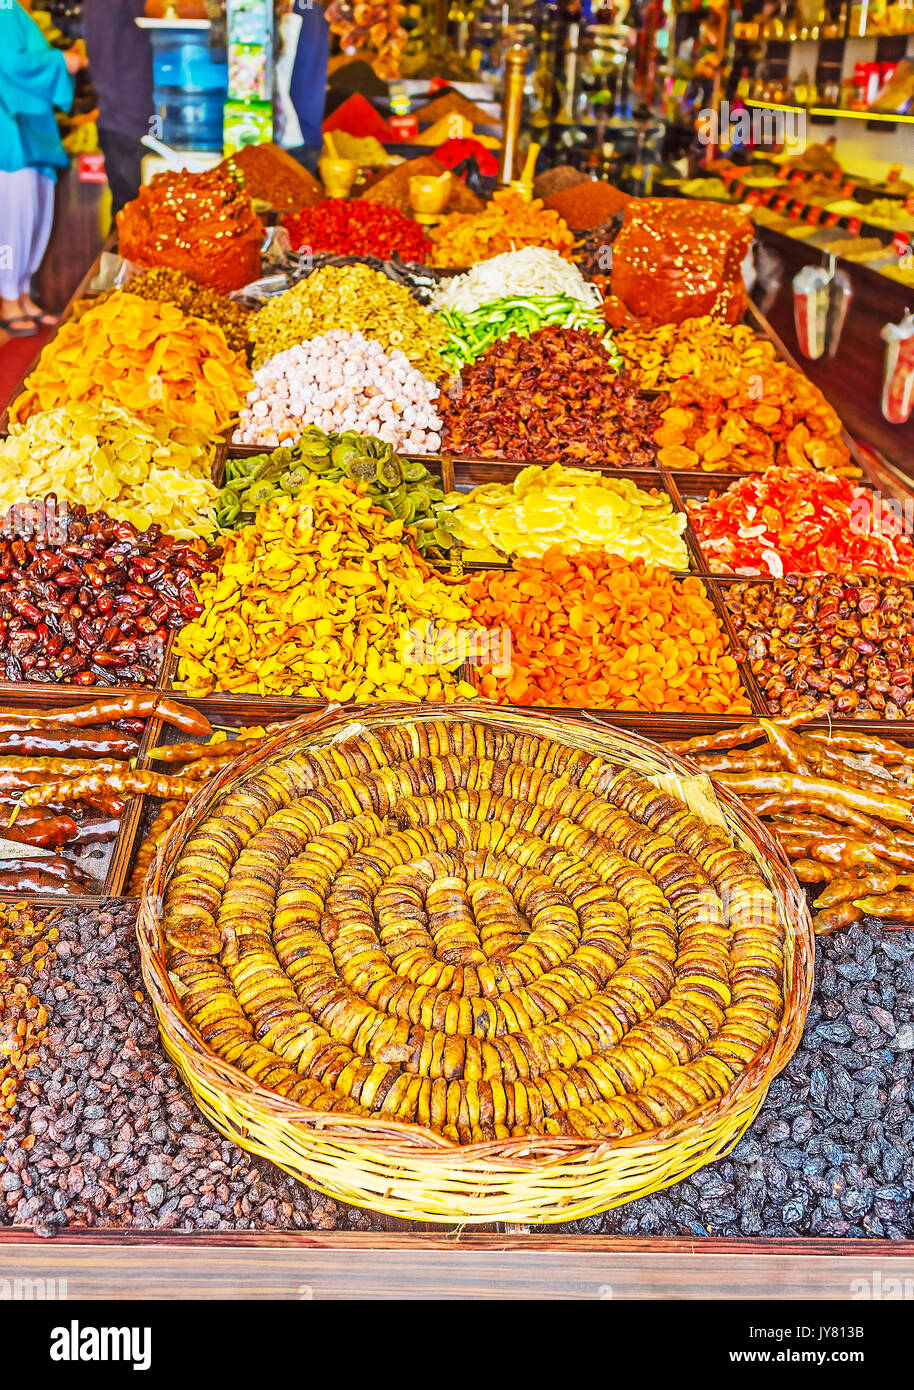 dried fruit bazaar market stockfotos dried fruit bazaar market bilder alamy. Black Bedroom Furniture Sets. Home Design Ideas